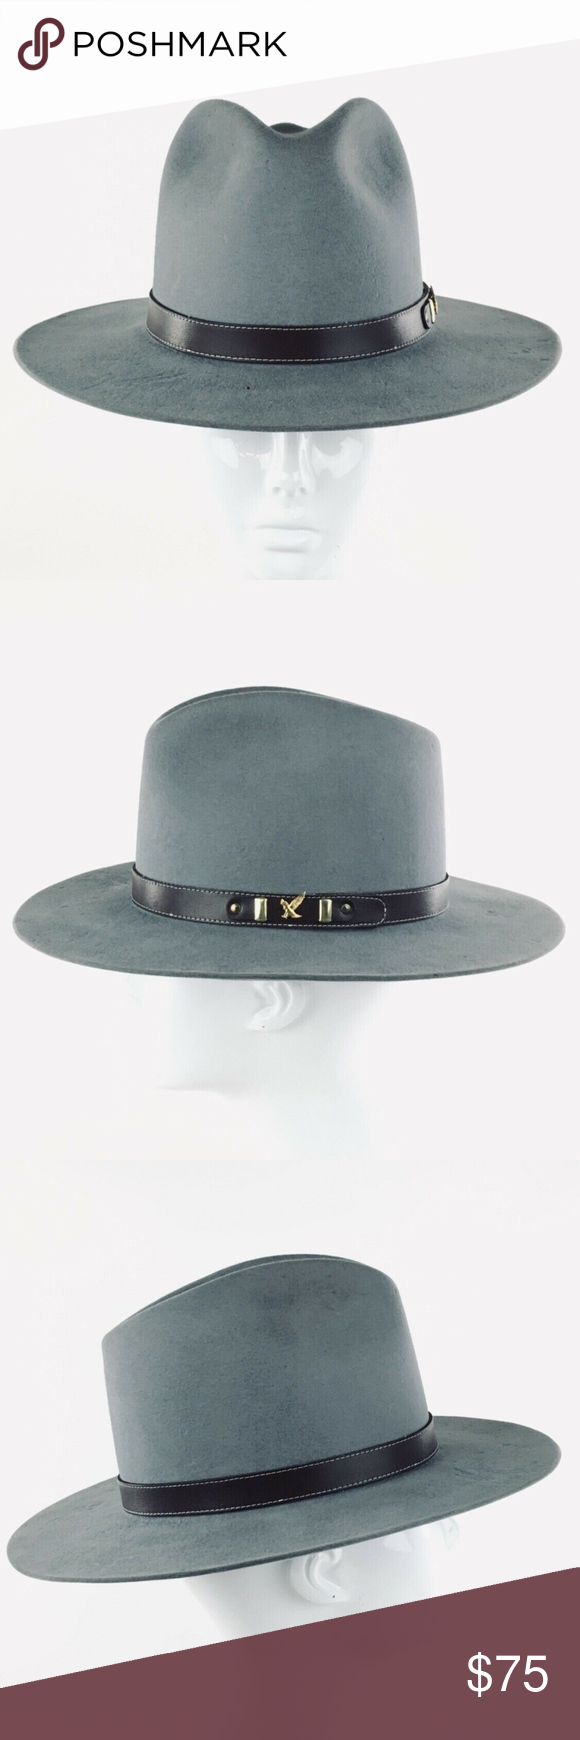 7f49afbec9a7f Rands Custom Gray Felt Hat 6 7 8 made for Swarovsk Gray Felt made for  Swarovski Optik Handwritted in the brim is 6 7 8 12 24 99  SW-237 KSB Rand s  Custom ...